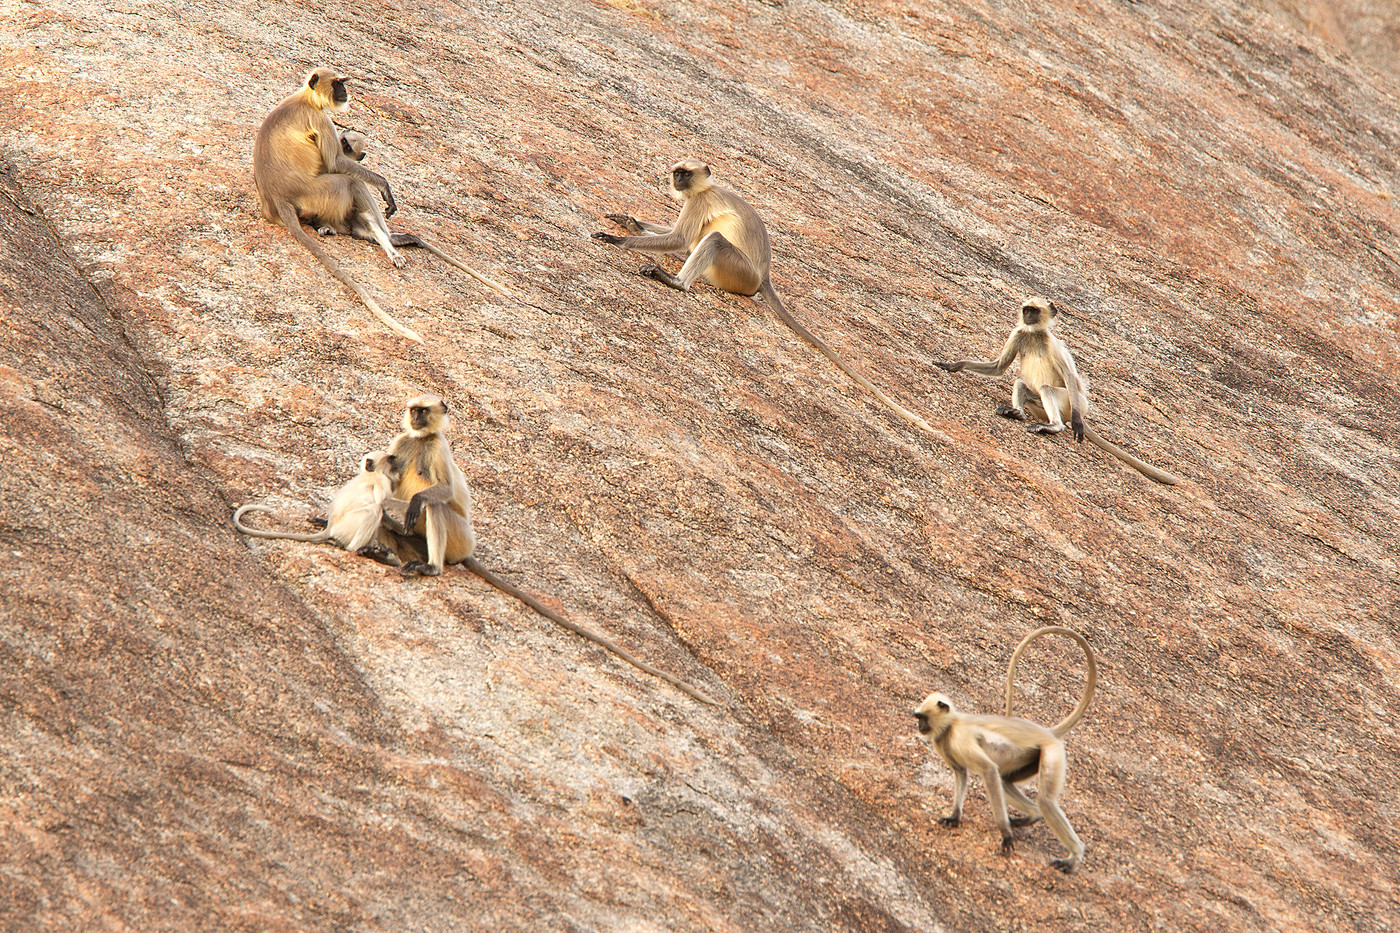 Langur Monkeys in Pali, India